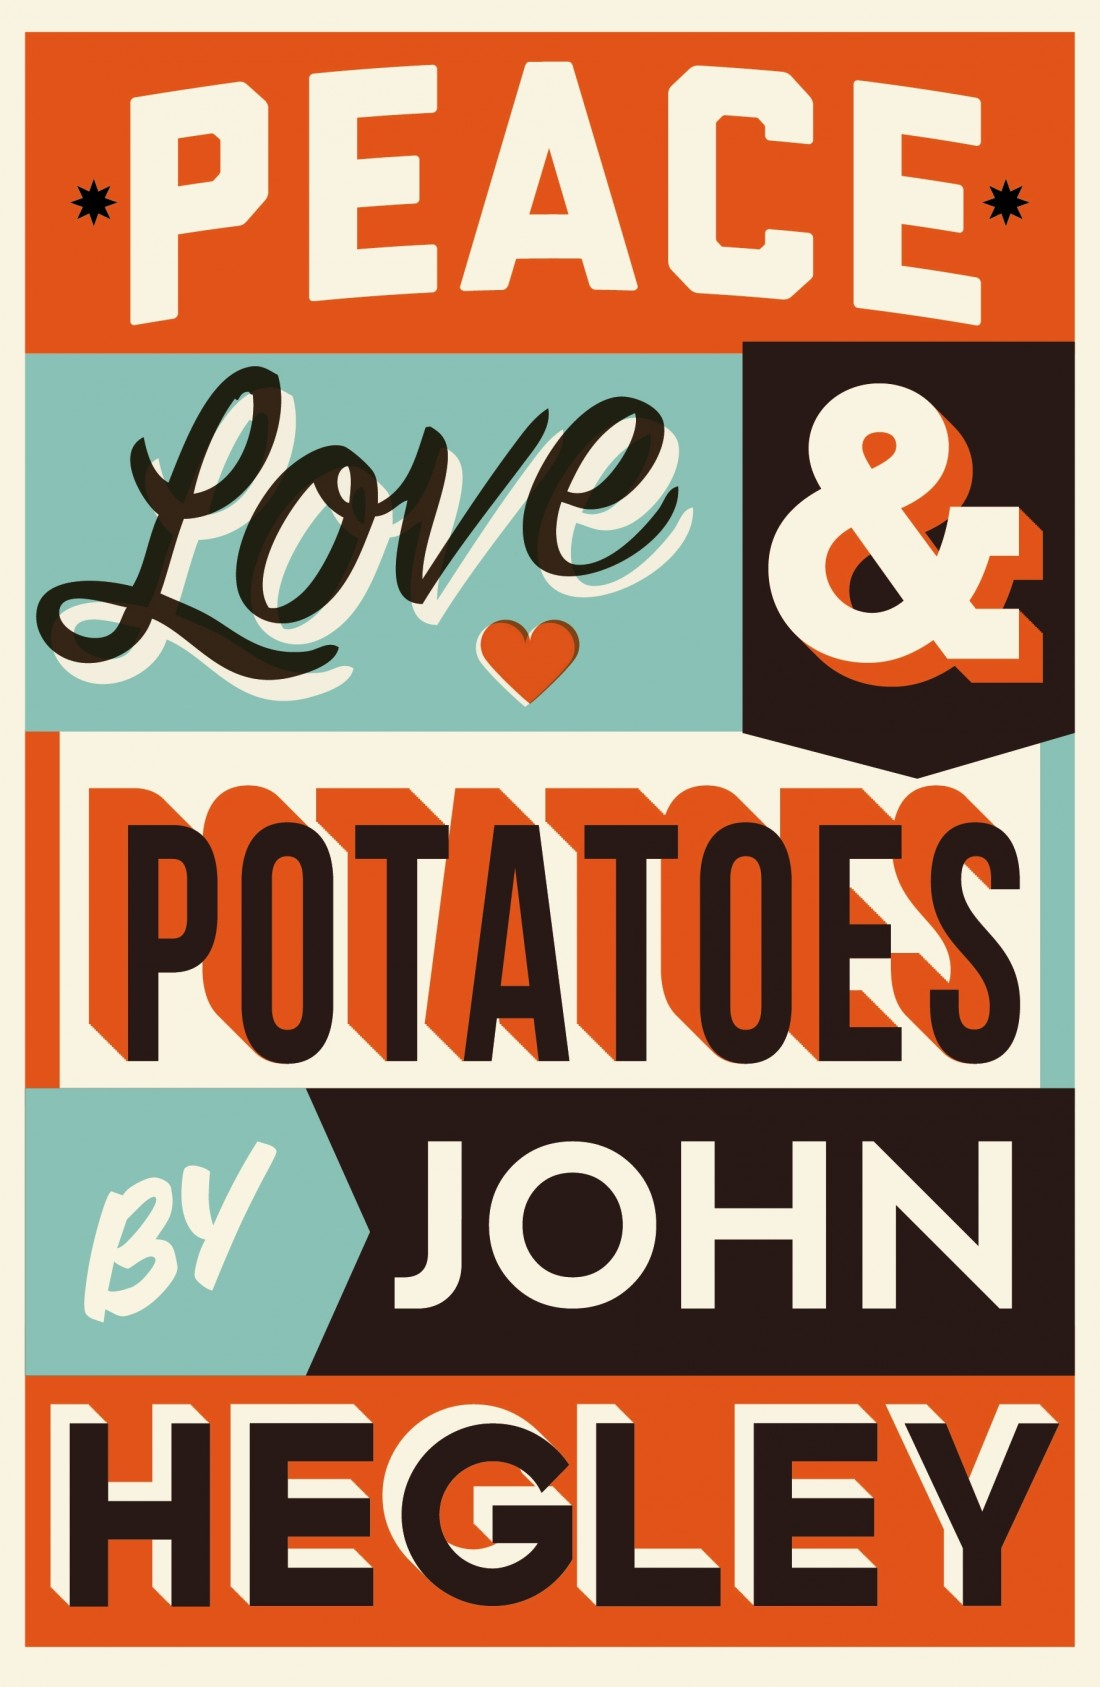 John Hegley 'Peace Love & Potatoes' at the LICA building, Lancaster University on Sat 20th Oct at 8.30pm